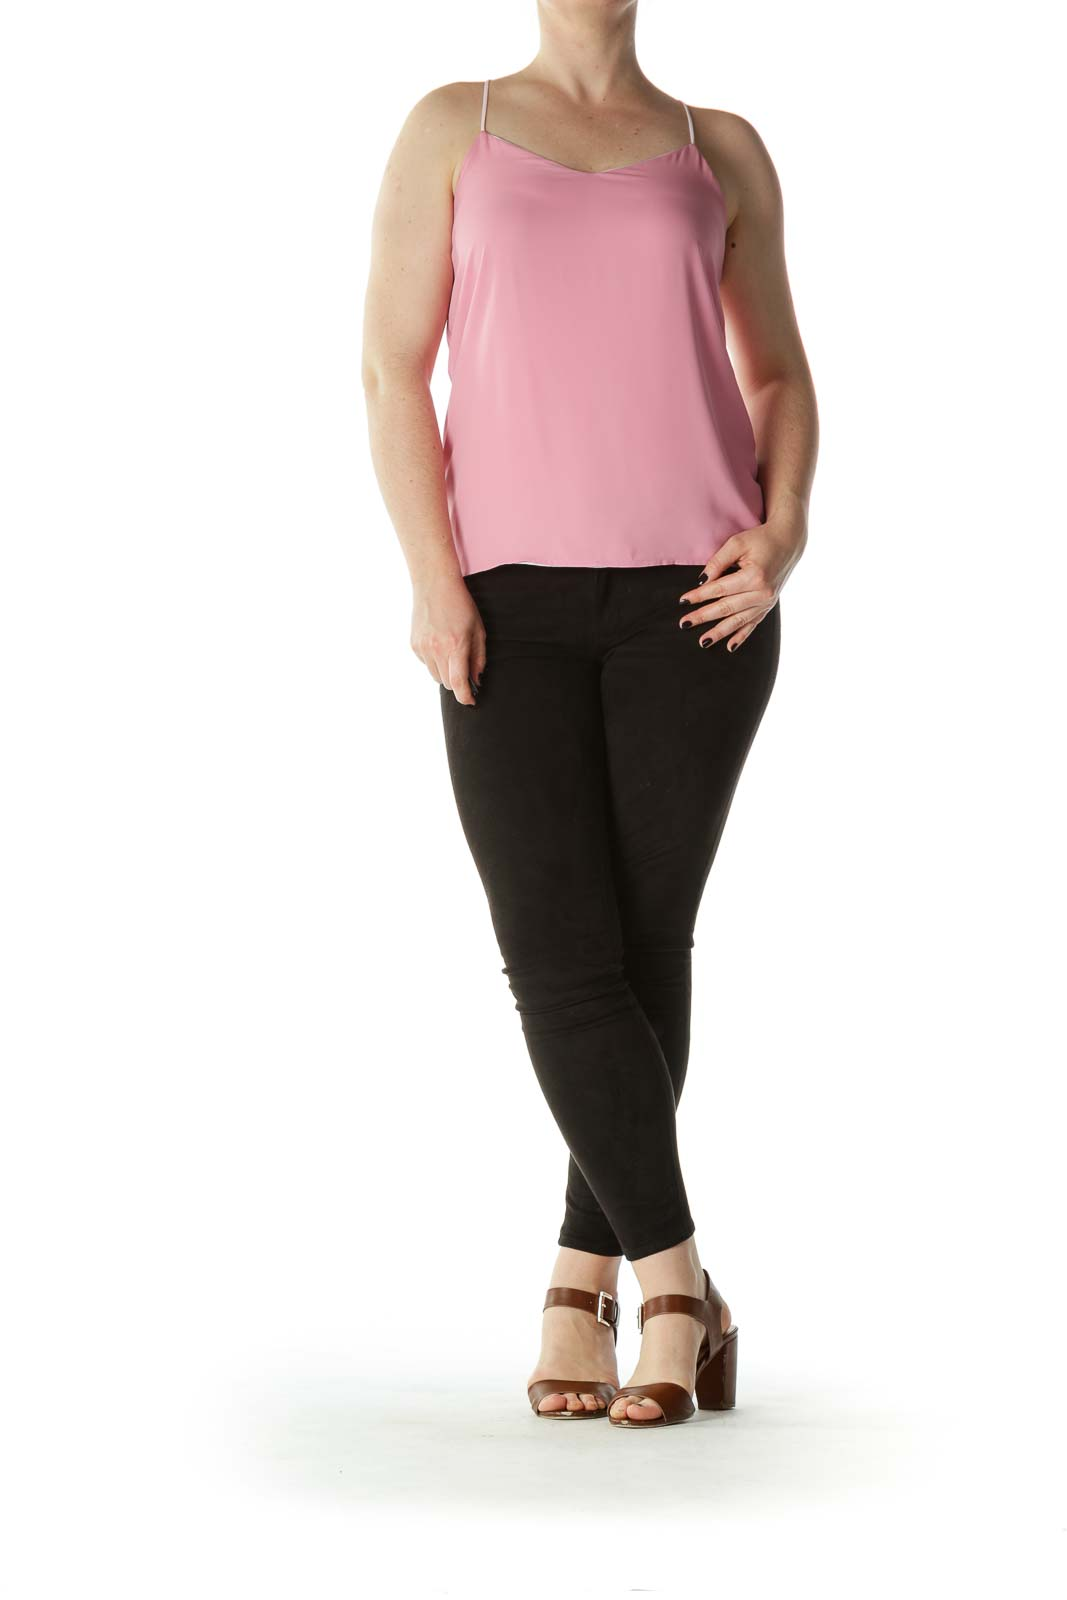 Two-Tone-Pink High-Low Flared Top